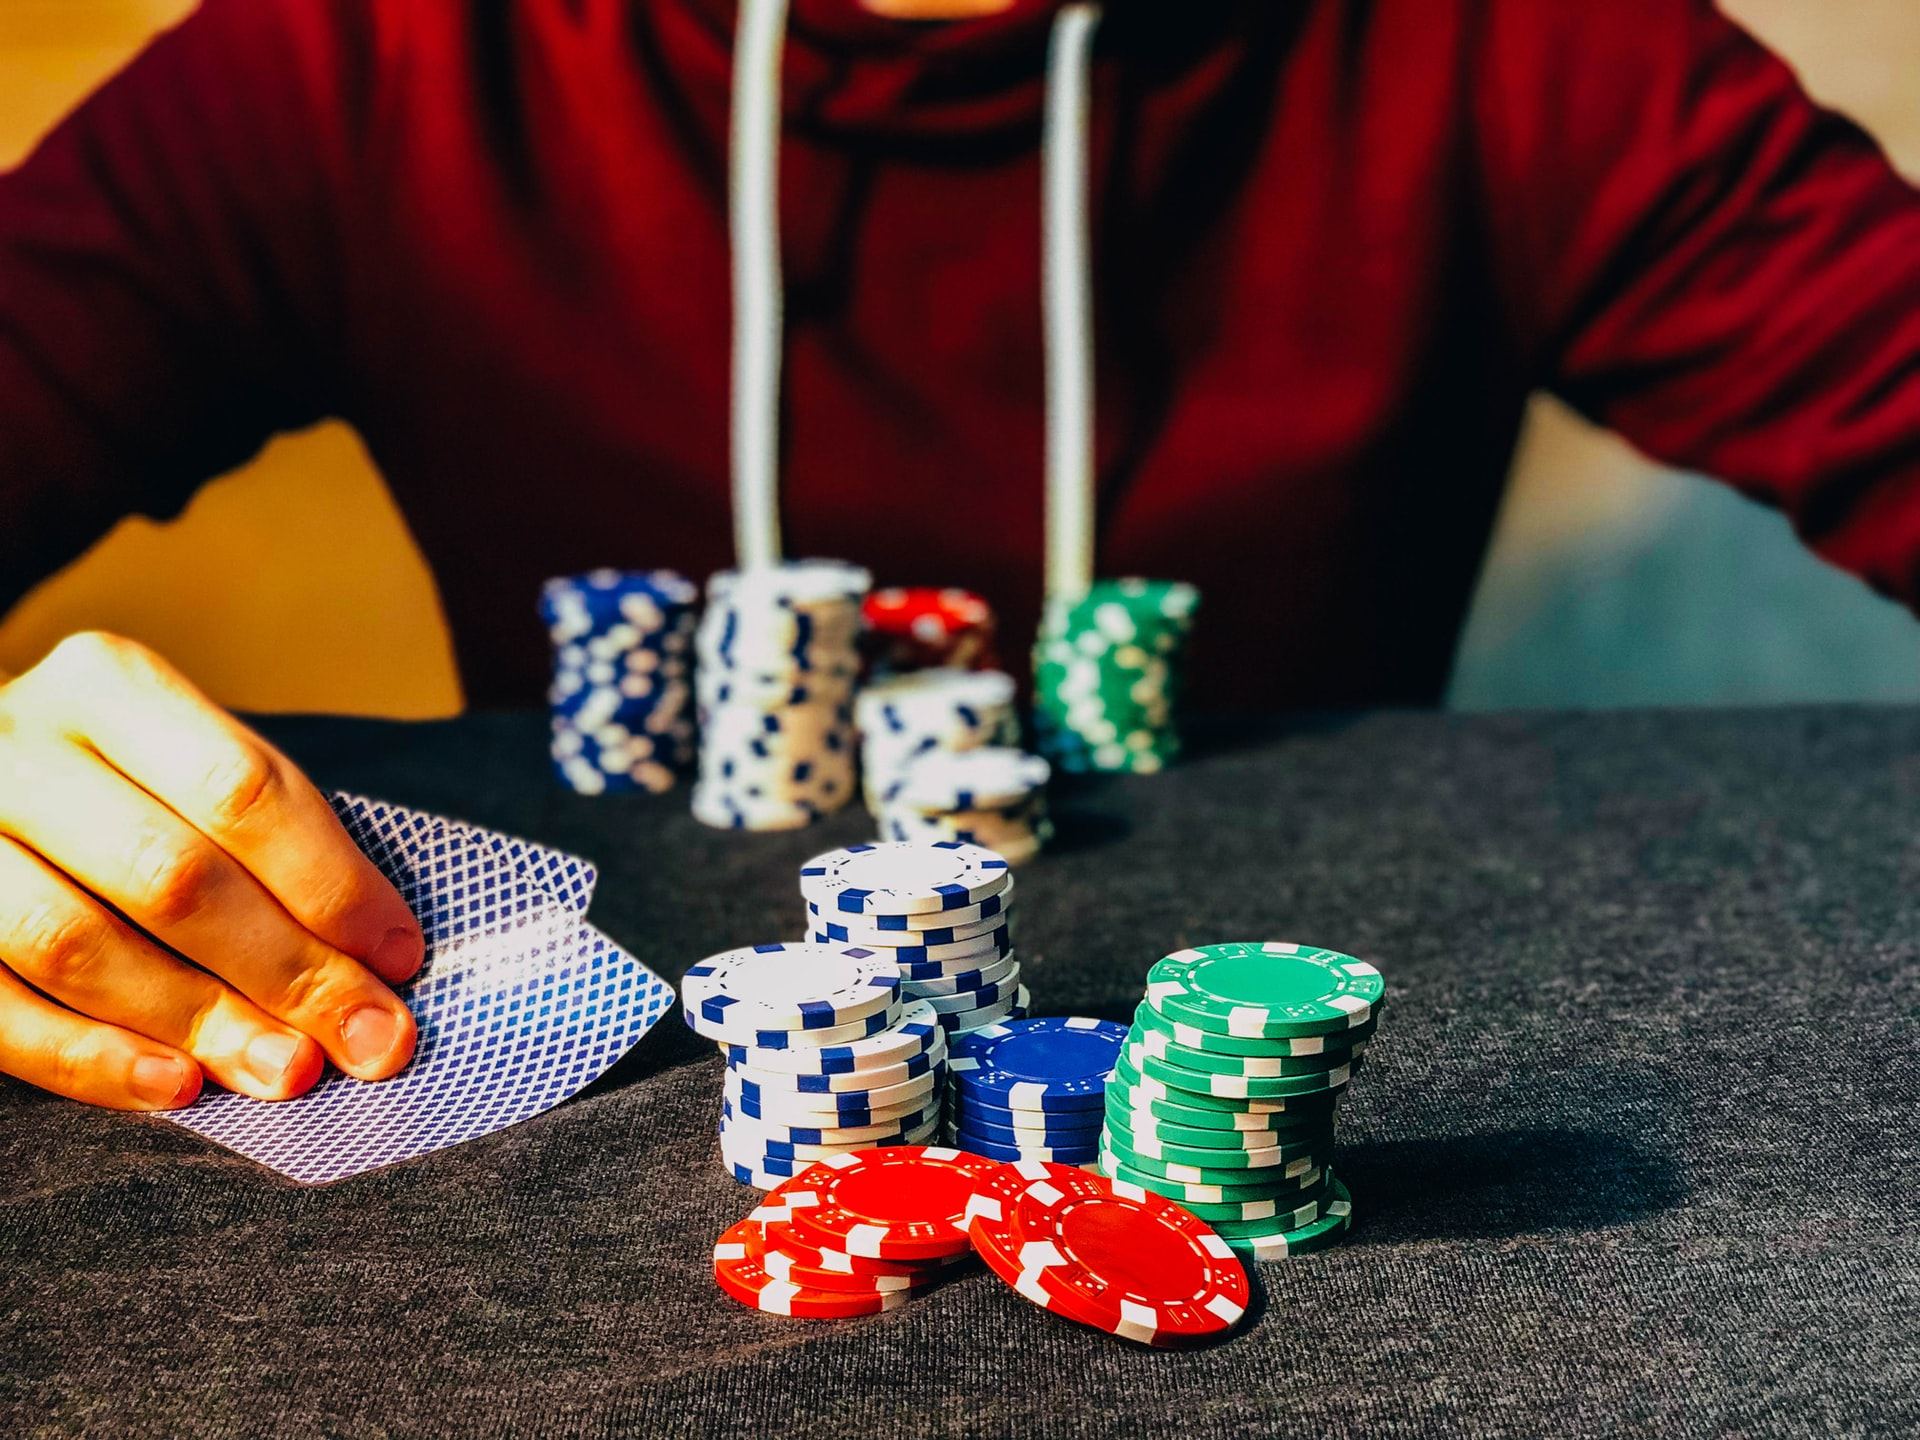 What Is Entrepreneurship Life And Some Tips For Starting In The Casino Industry